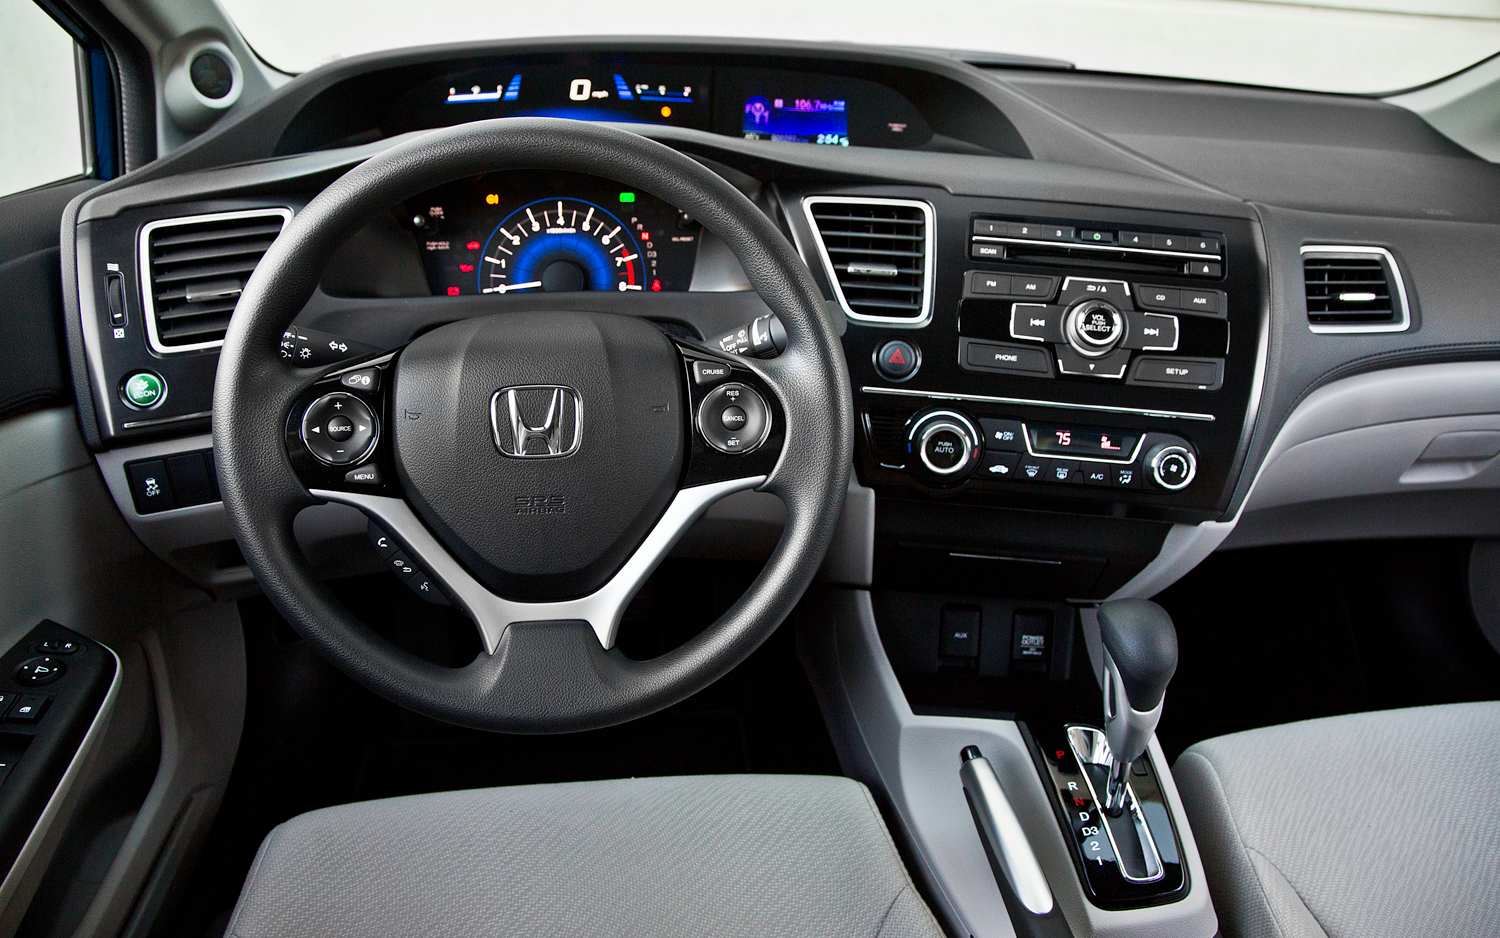 2013 Honda Civic Information And Photos Zombiedrive